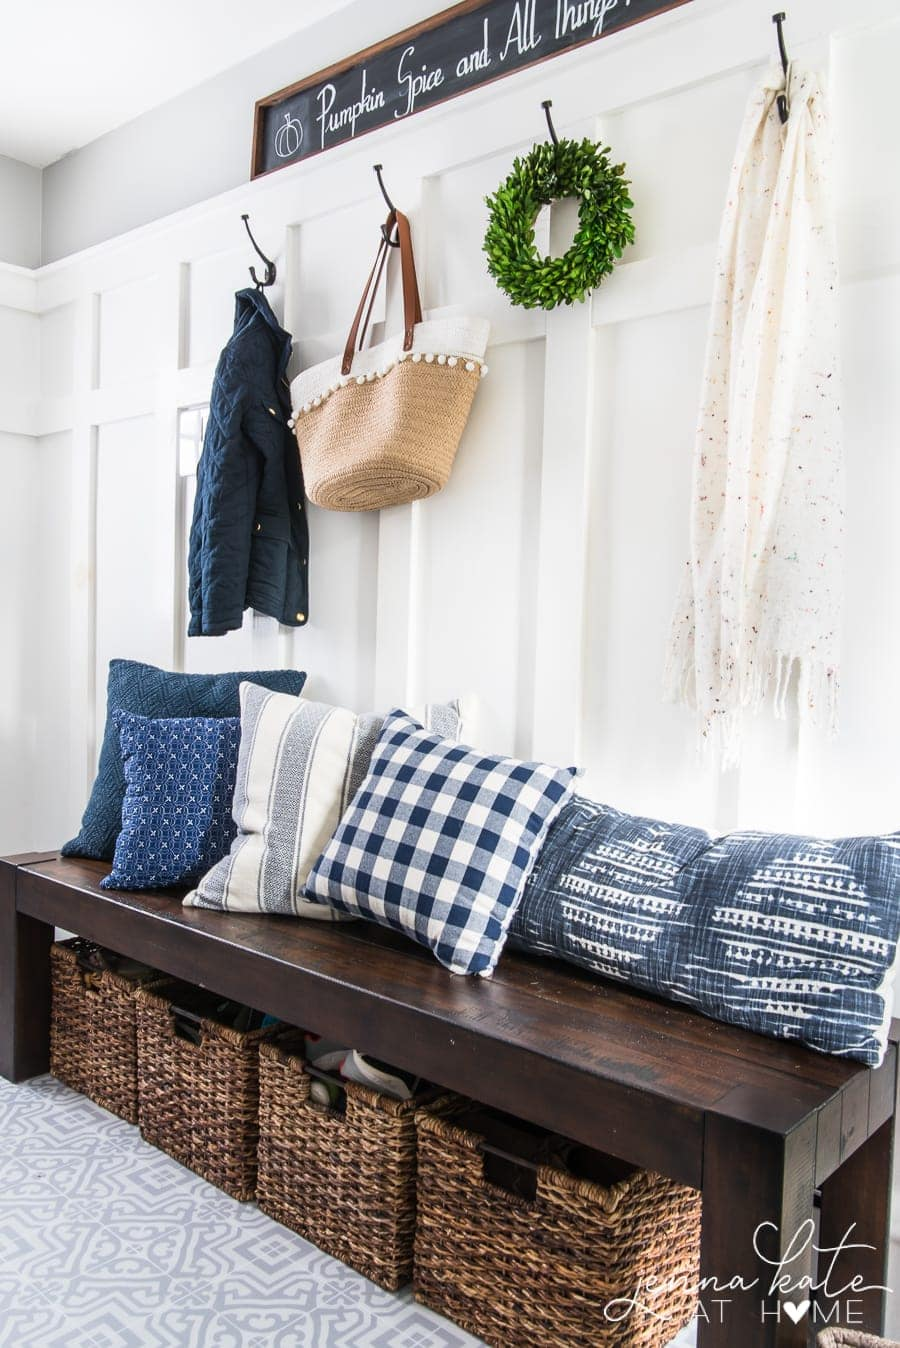 Organized mudroom with items on hooks and shoes in a basket under a bench